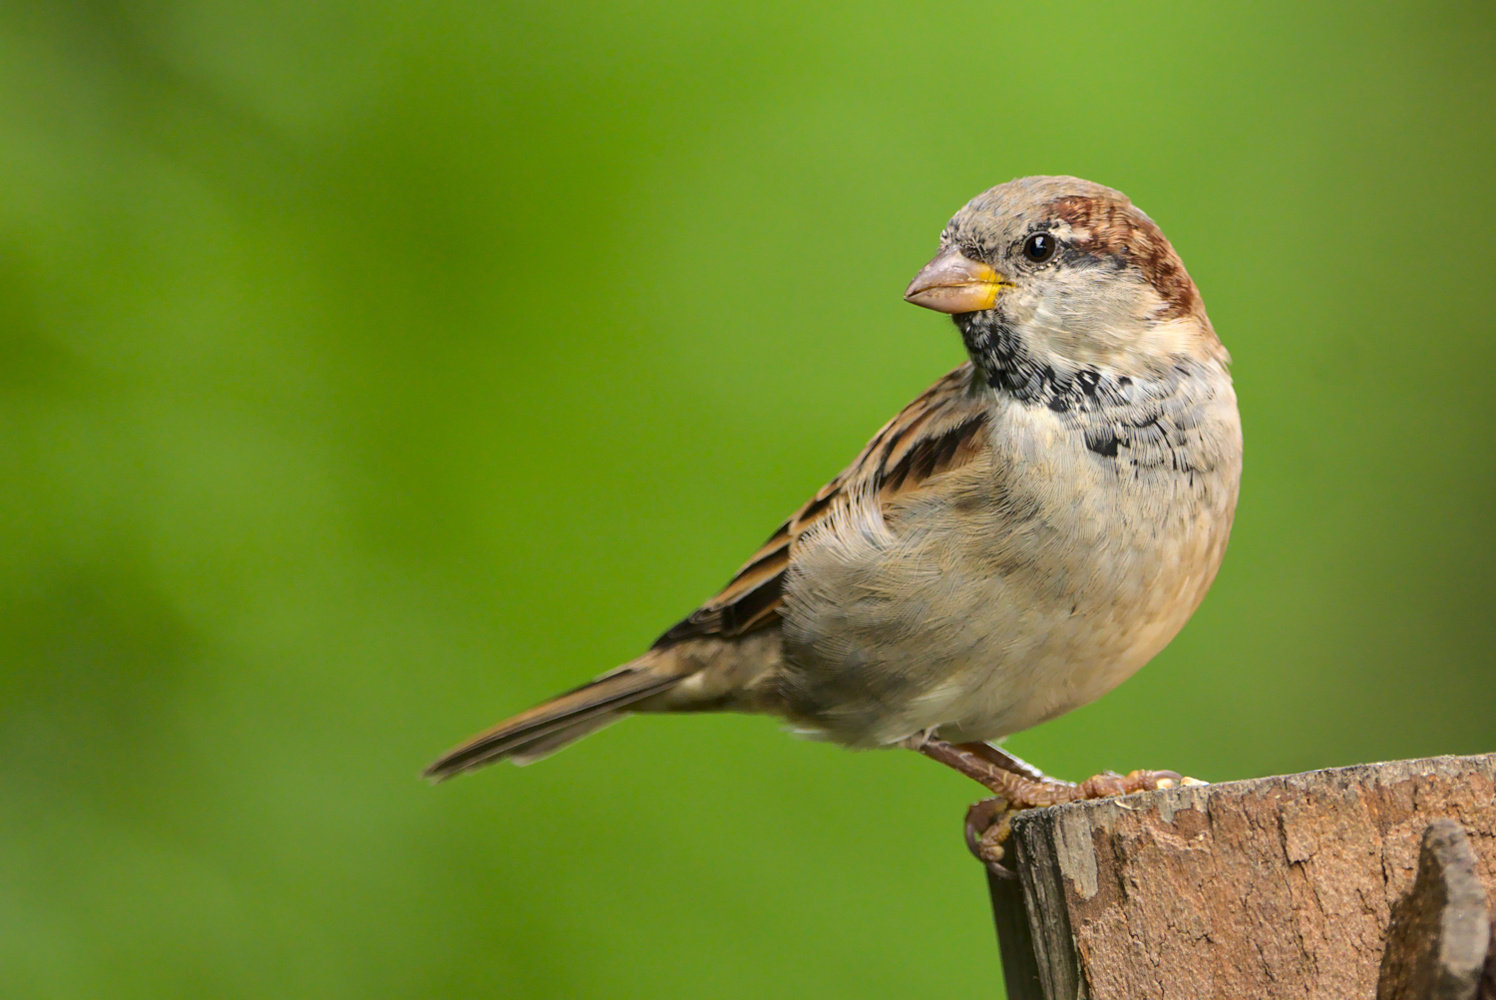 Juvenile House sparrow (Passer domesticus) male by Lukasz J